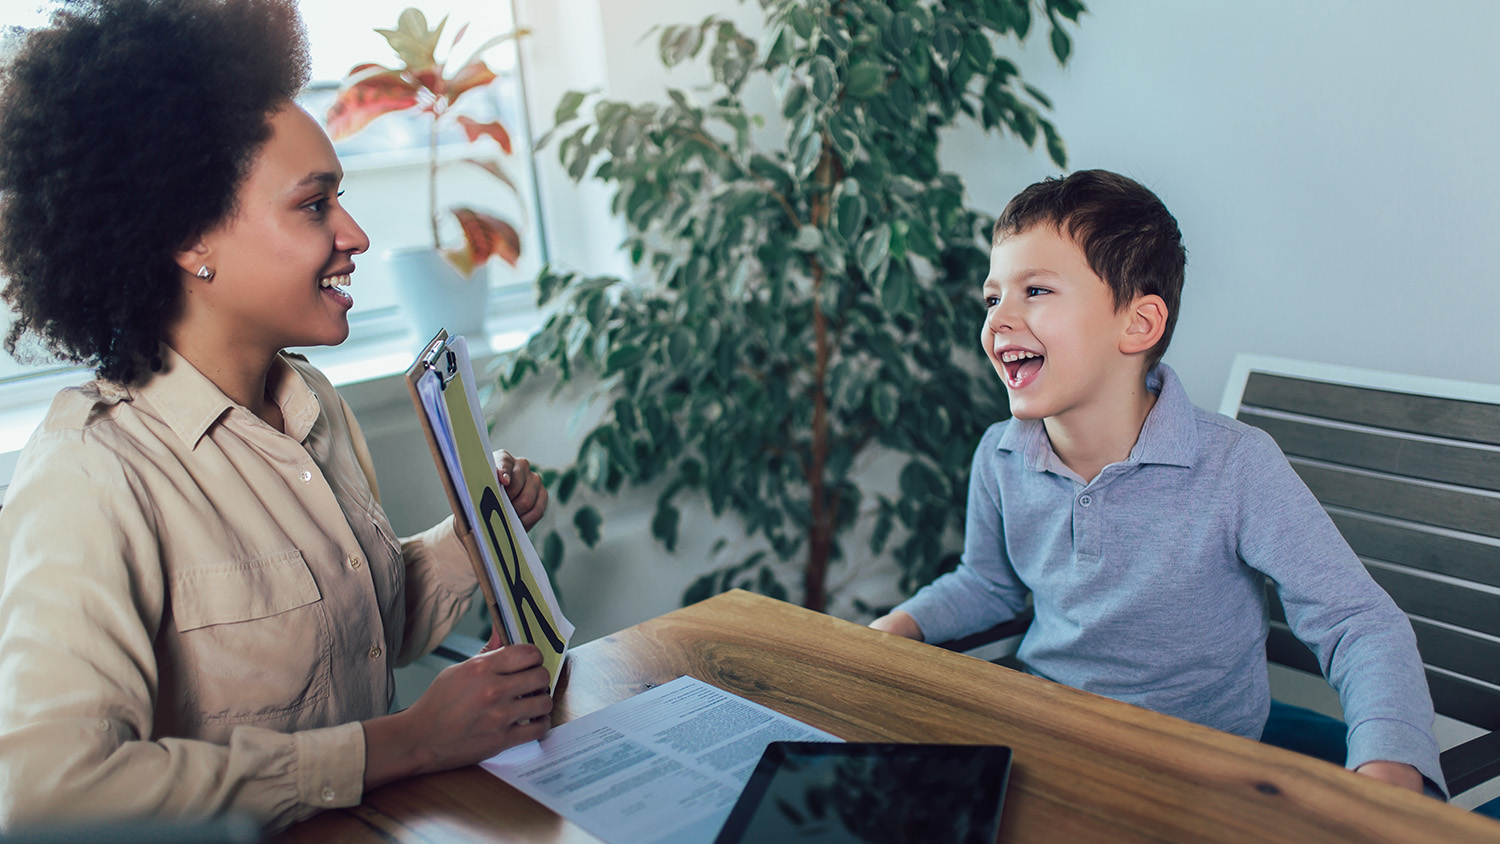 Speech therapist during a session with a little boy